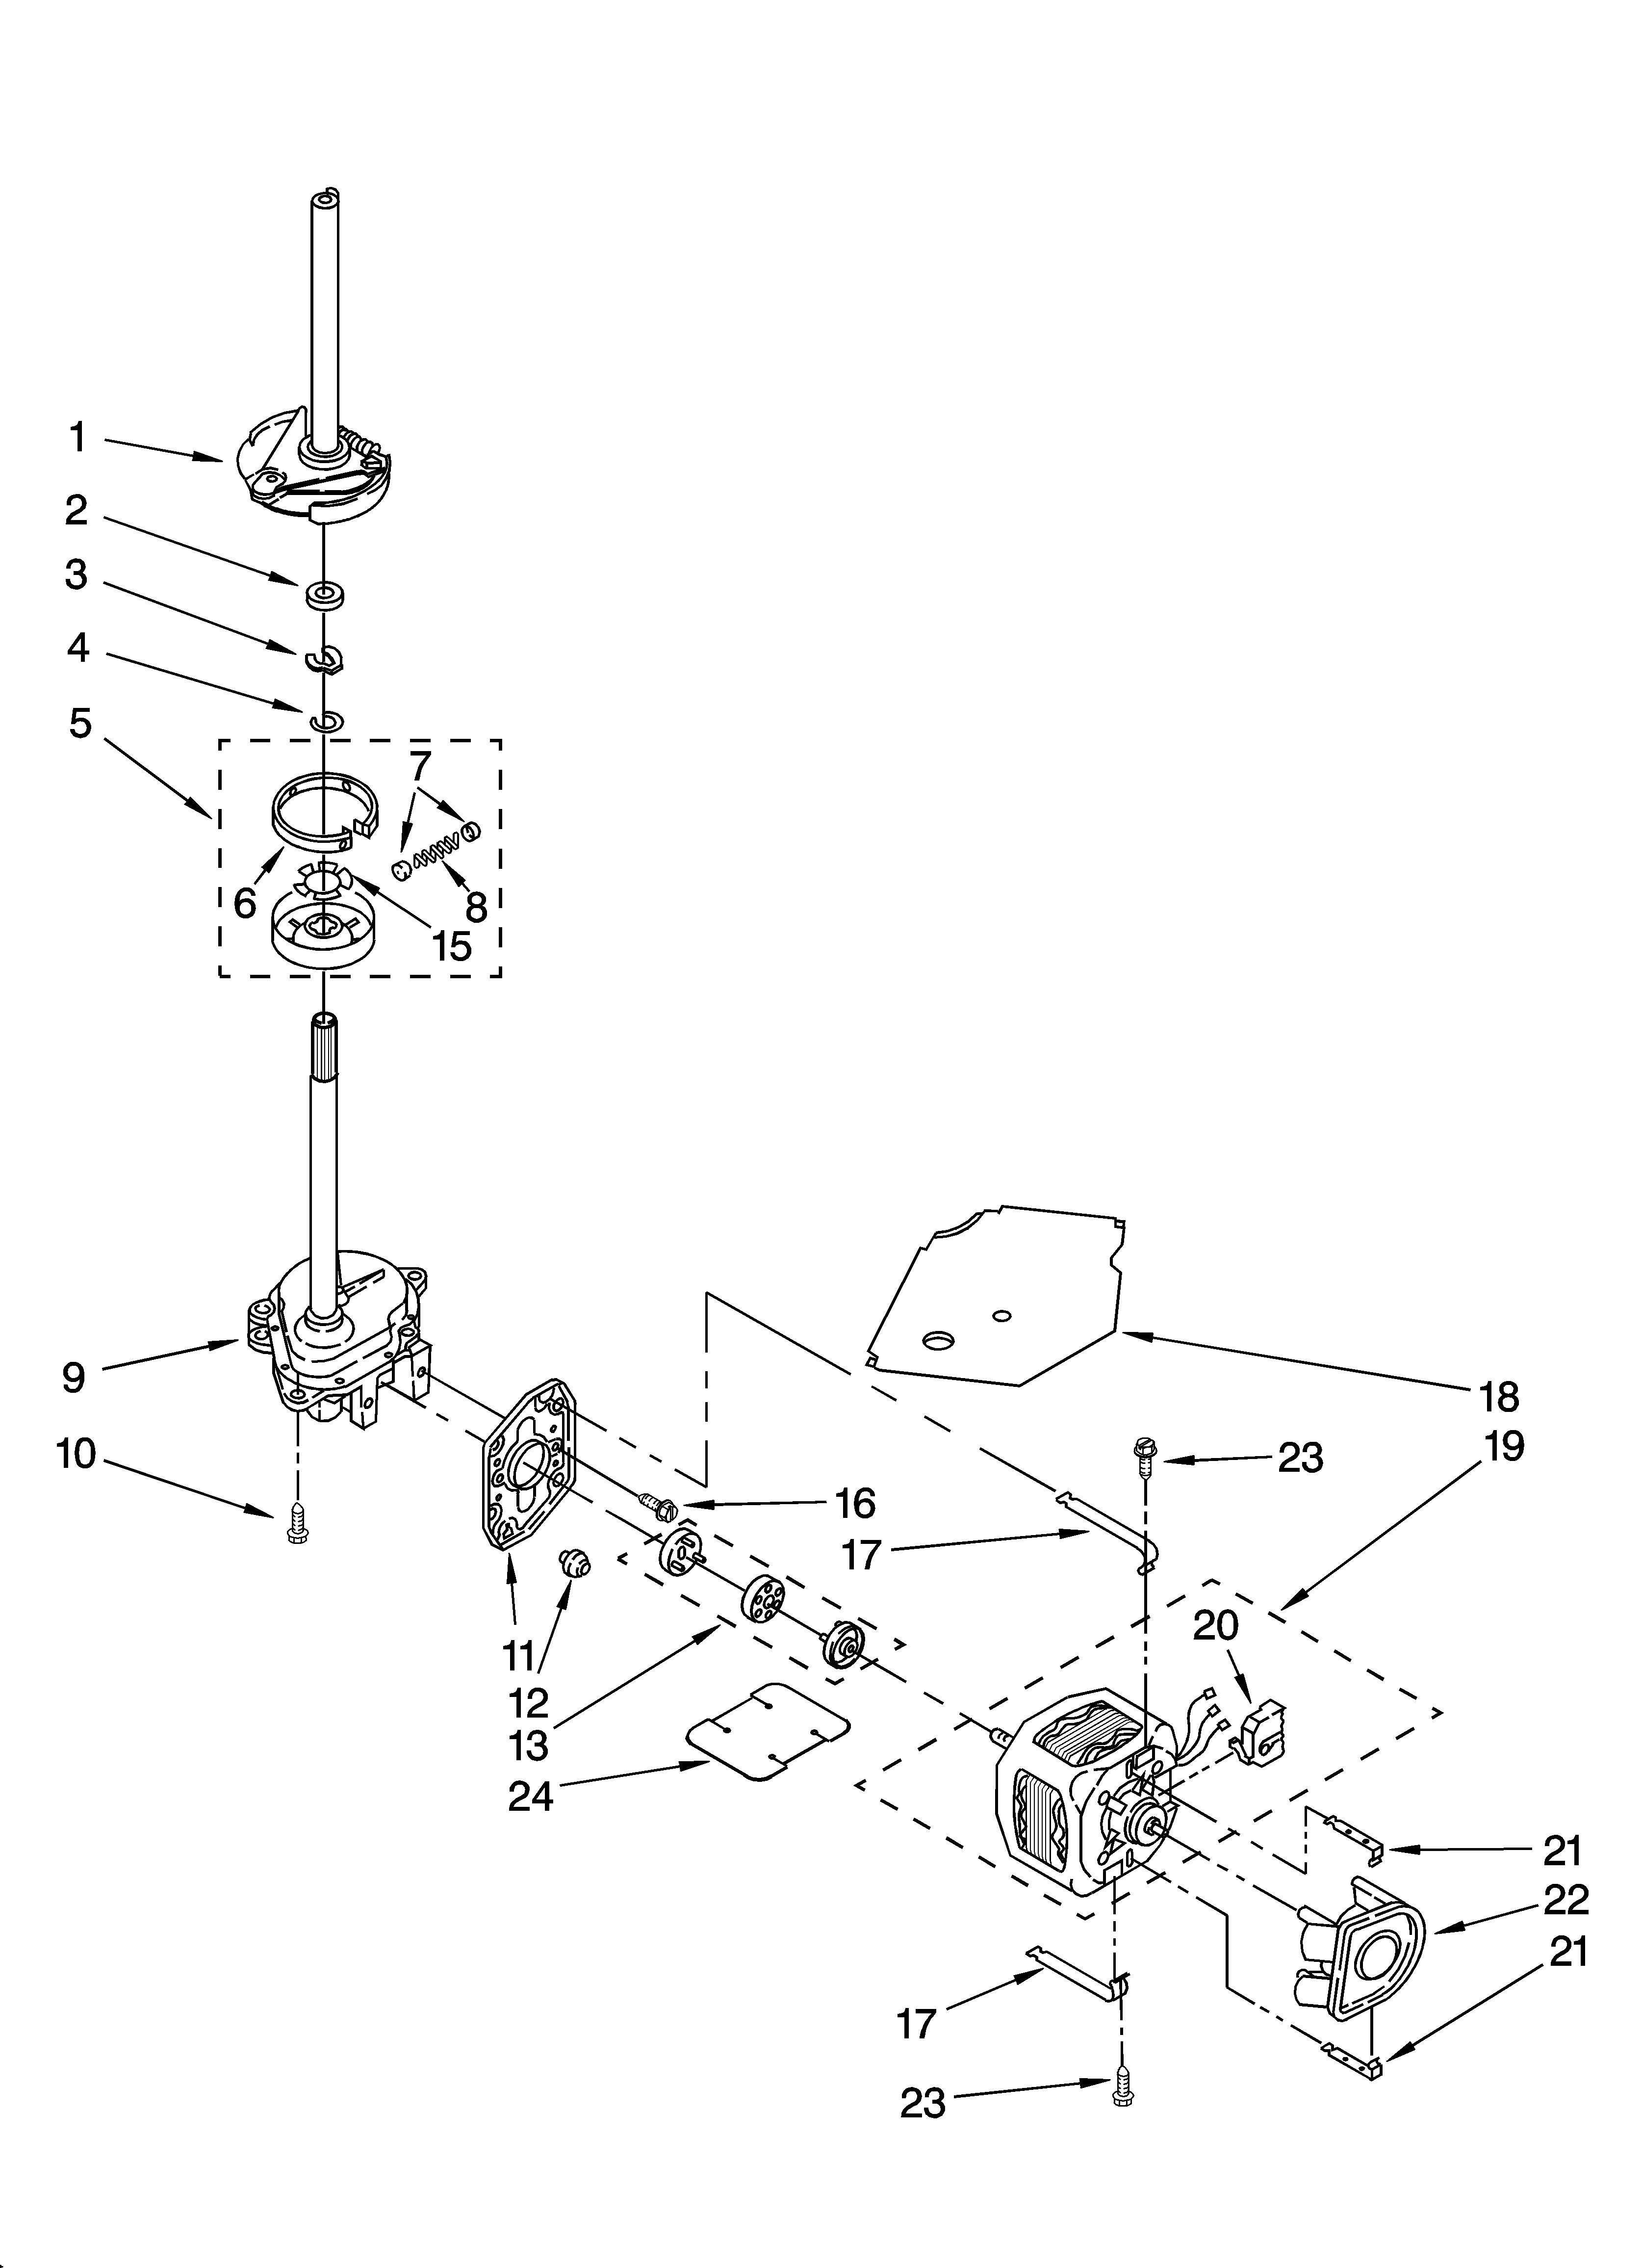 Whirlpool Dishwasher Diagram Group Picture Image By Tag Wiring Cabrio Schematics To Remove Ultimate Care Ii Lid Diagrams U2022 Rh Autonomia Co